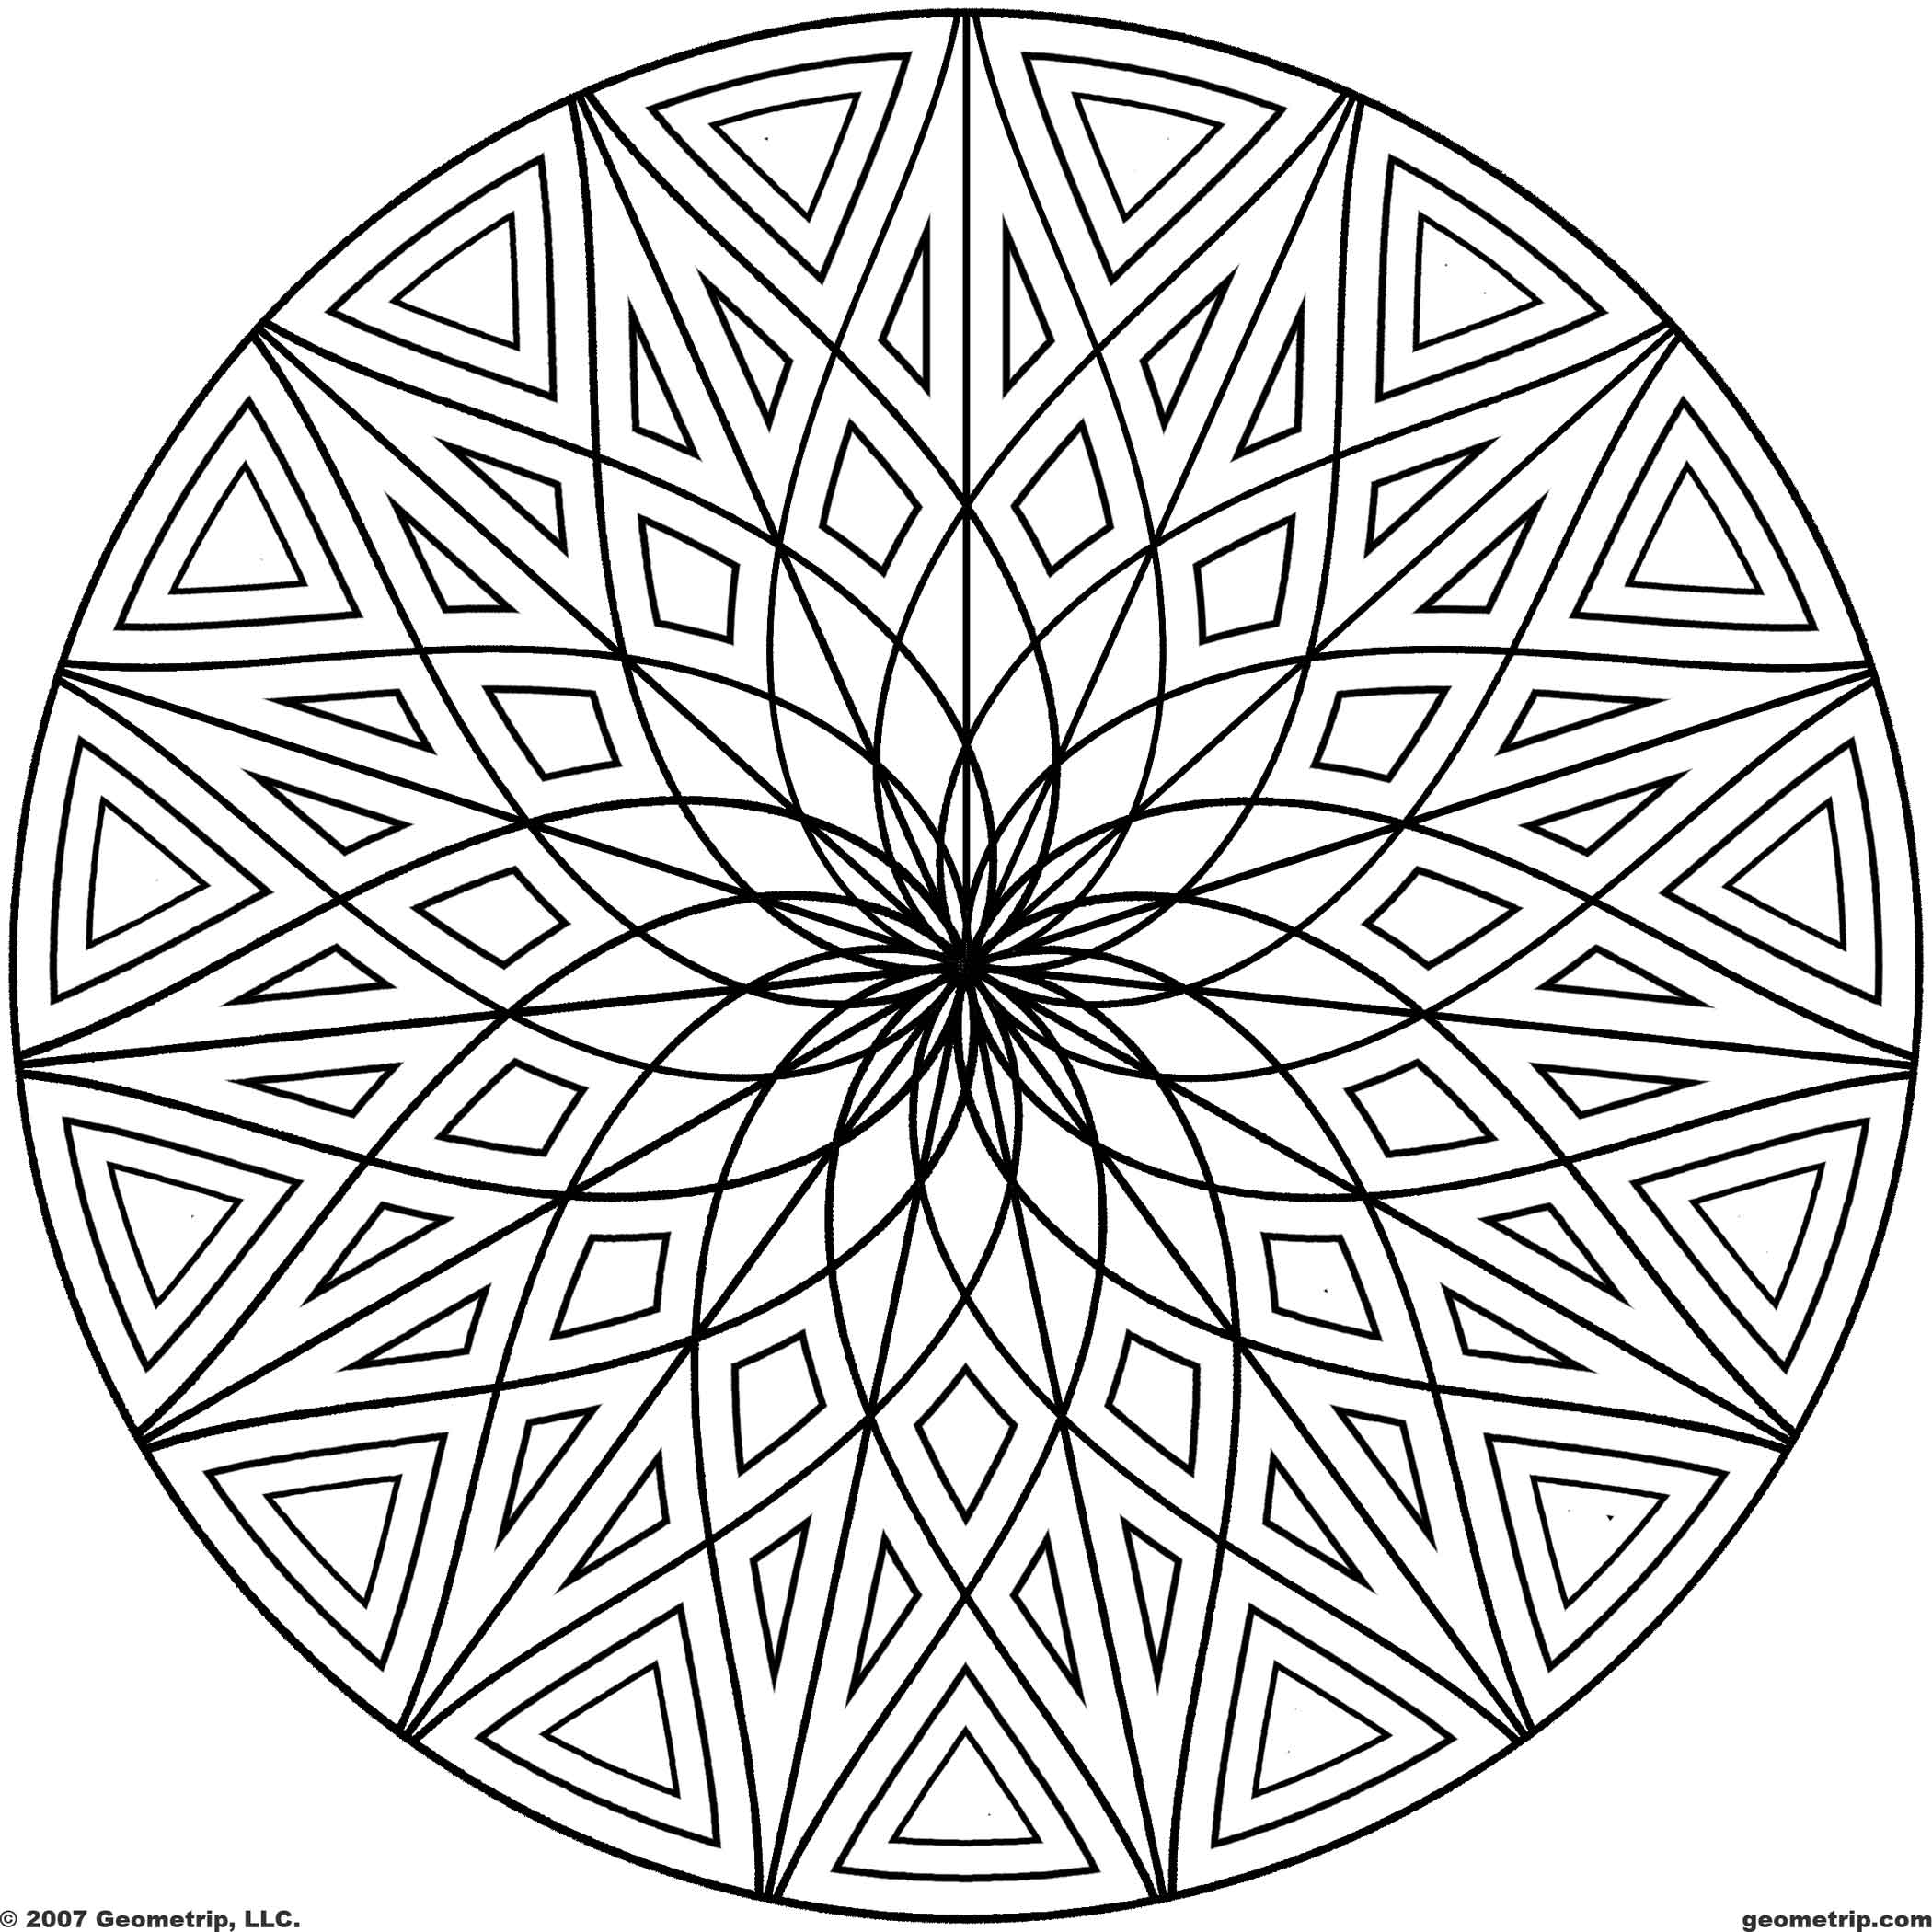 cool pictures to print 16 cool designs patterns to color images cool design cool pictures print to